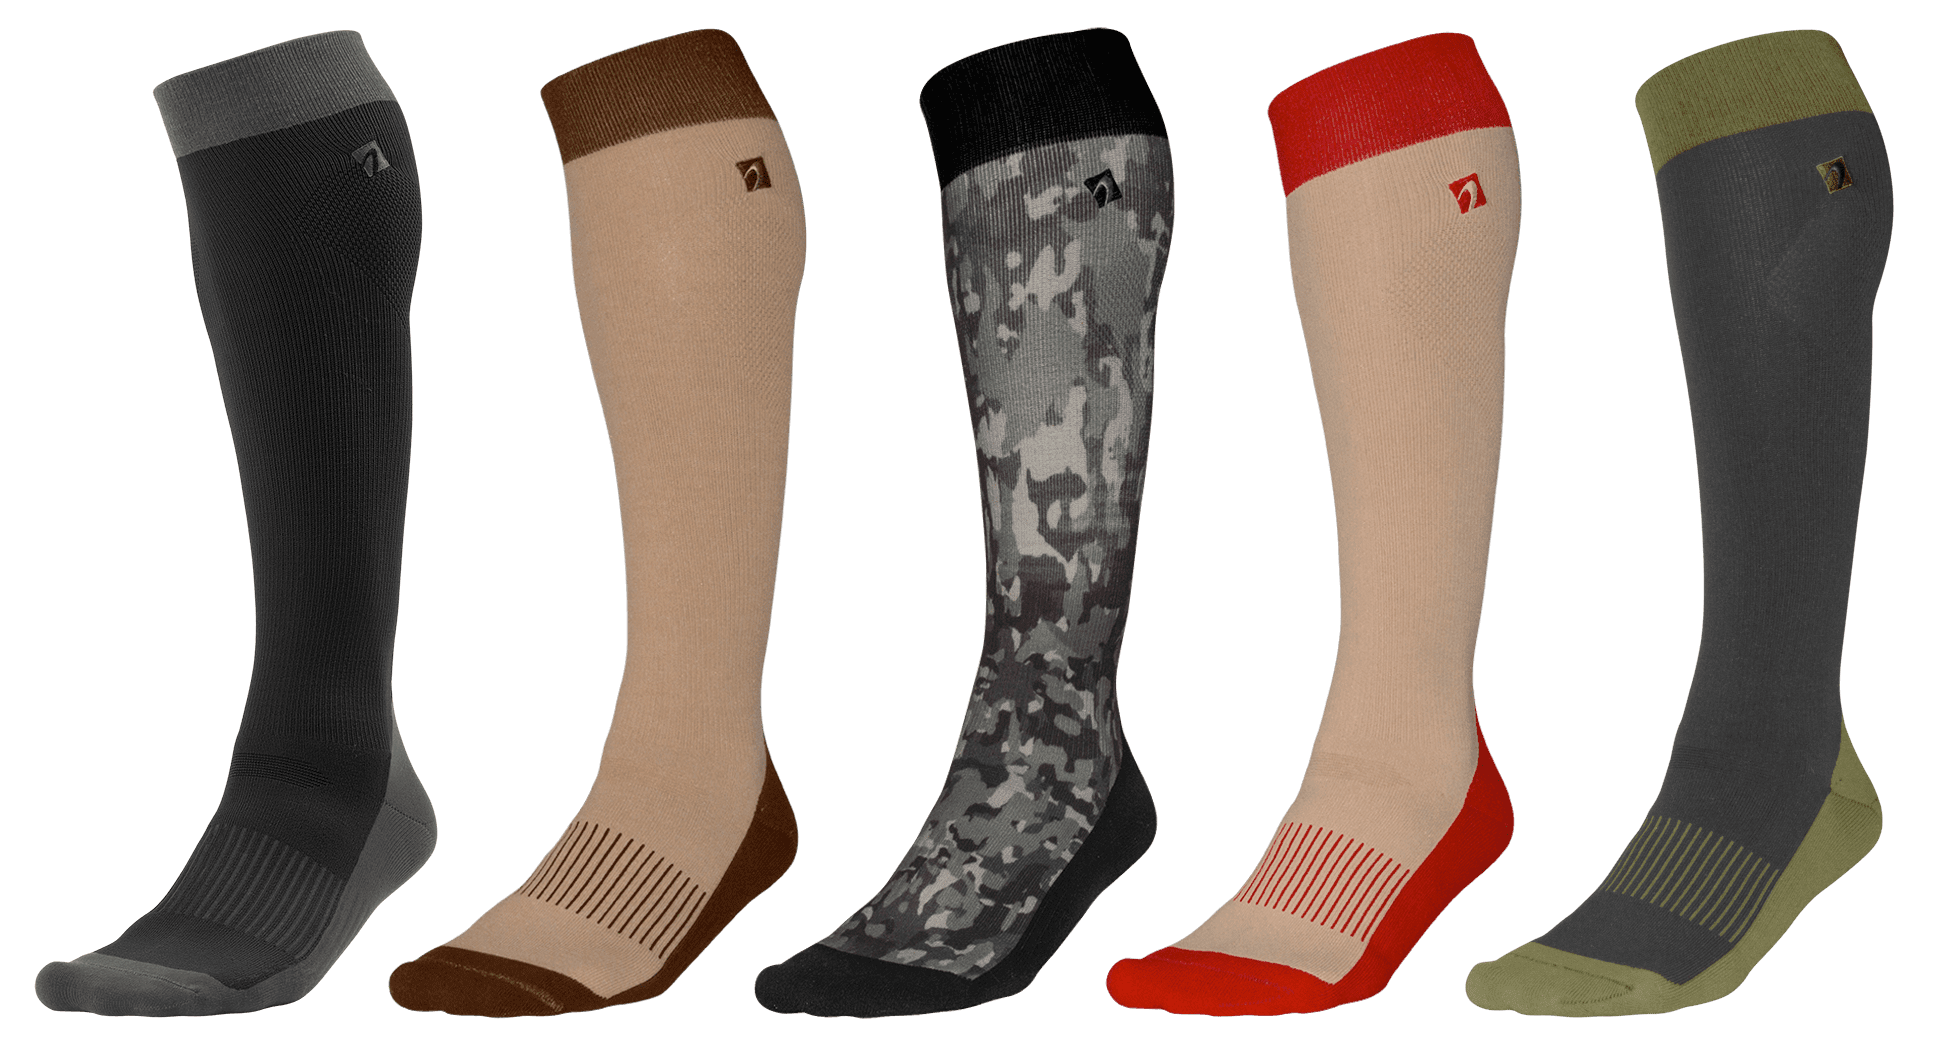 h1 ACEL Thermal Socks